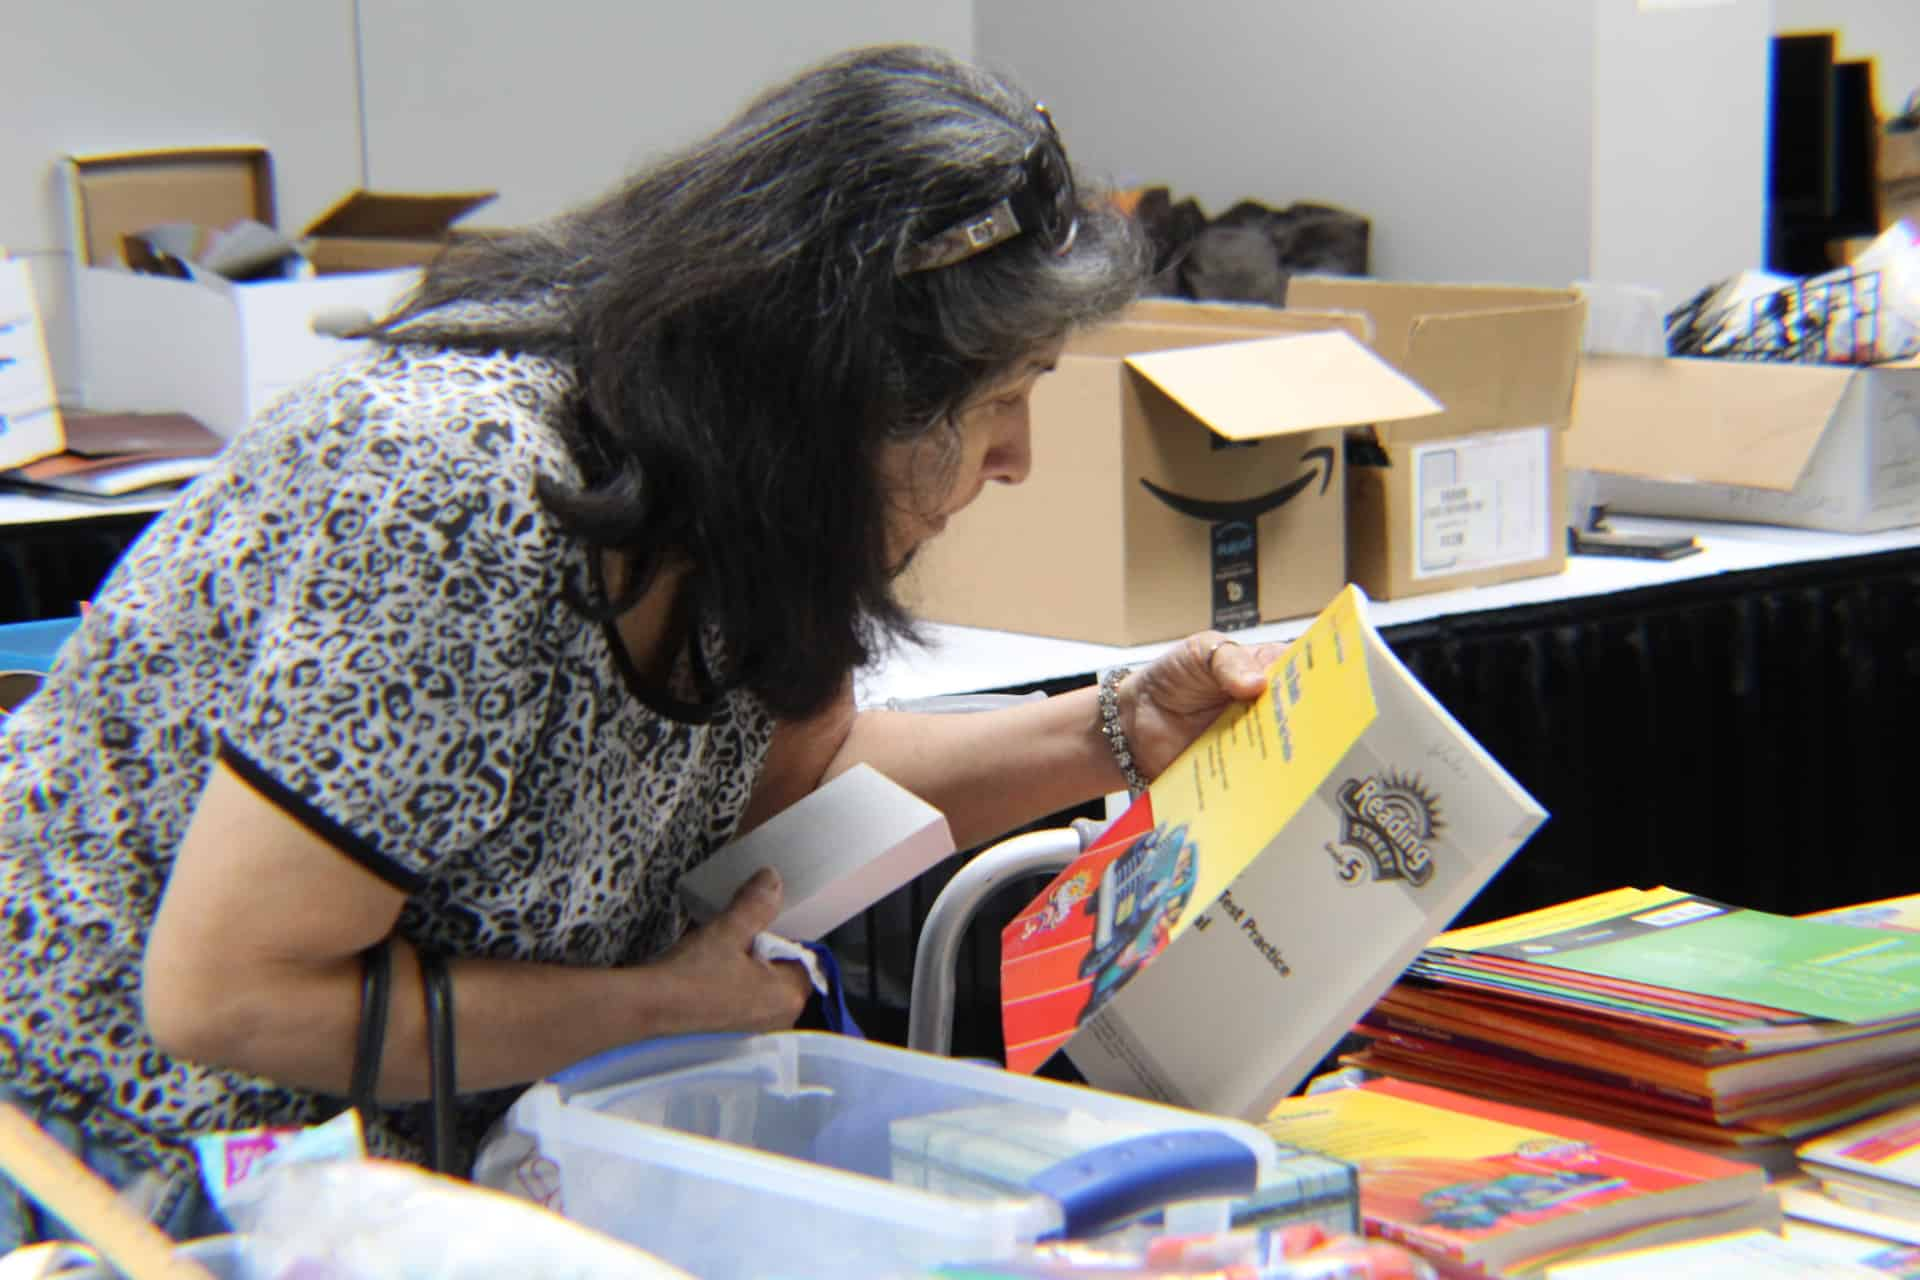 A teacher inspects a free book at the STEM Shoppe Open House.